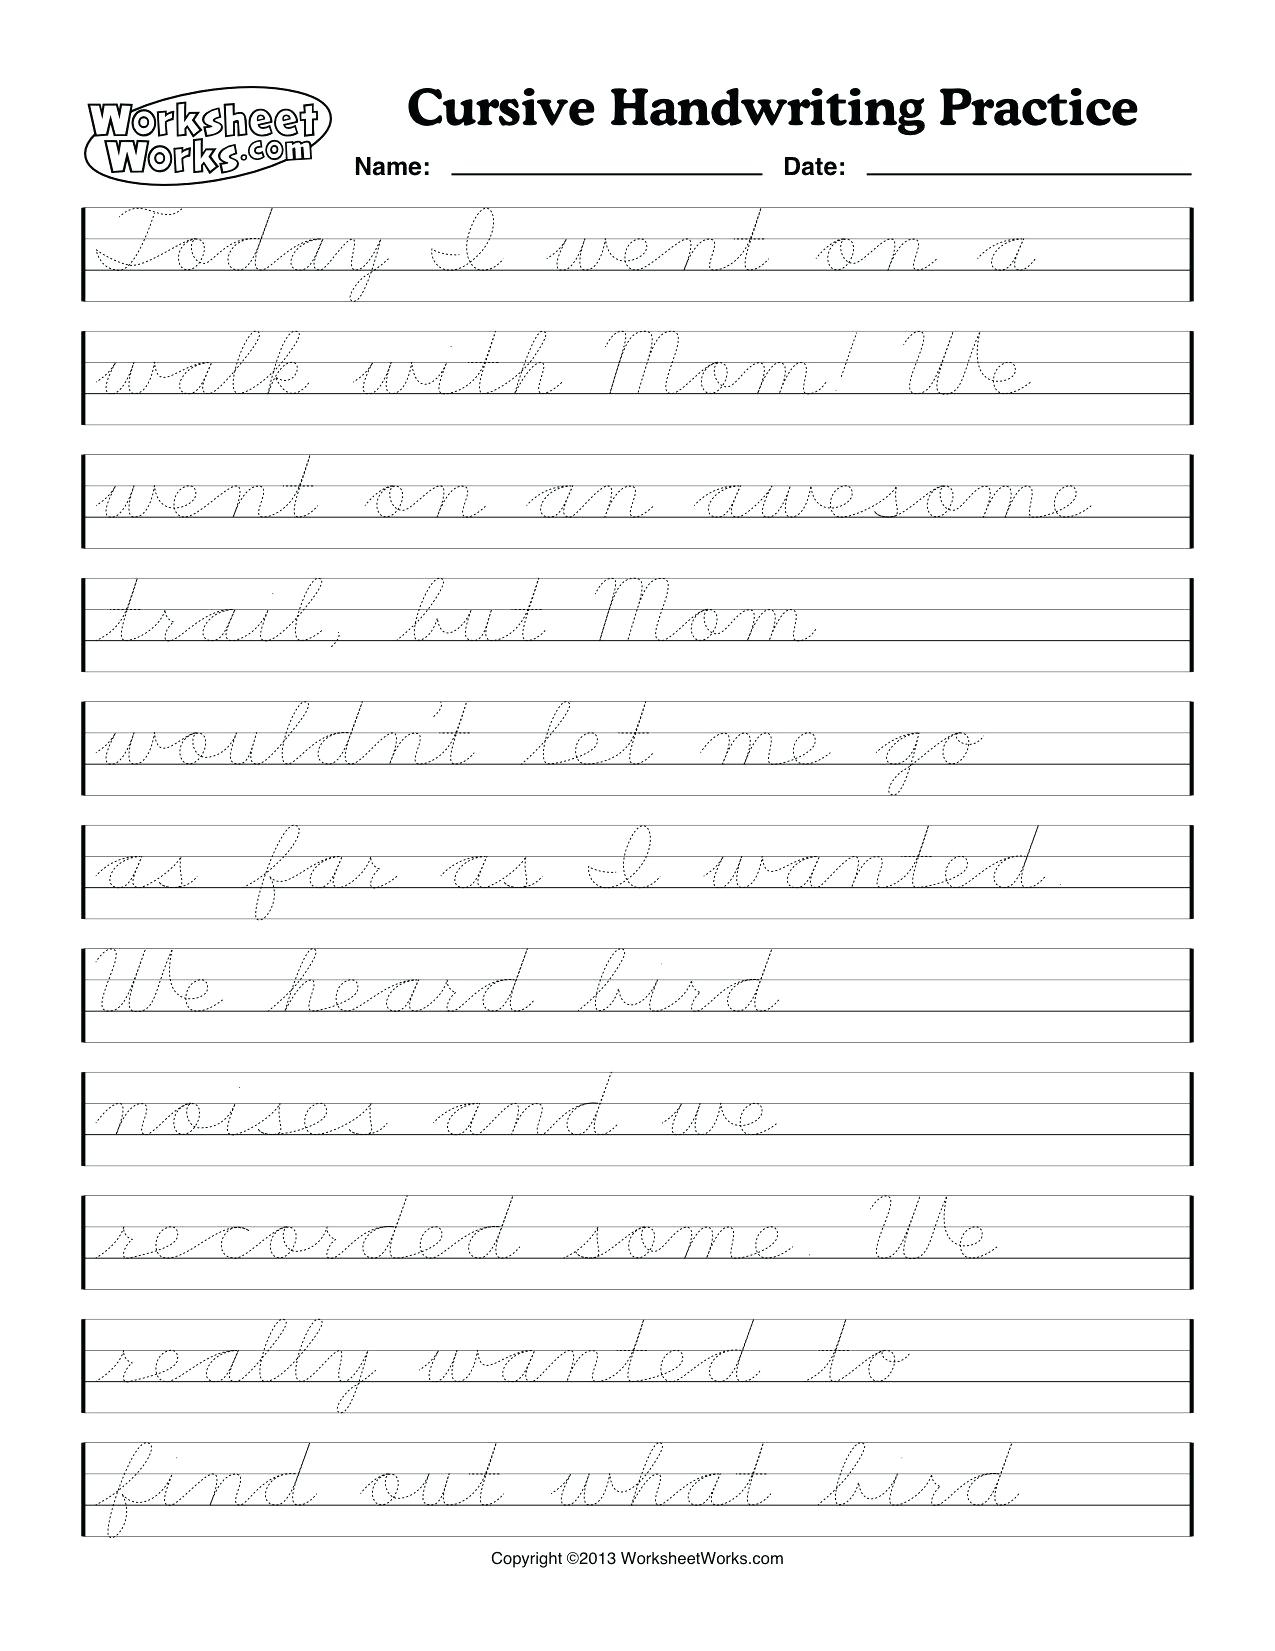 Printable Cursive Name Sheets Cursive Name Worksheets Cursive - Free Printable Cursive Handwriting Worksheets